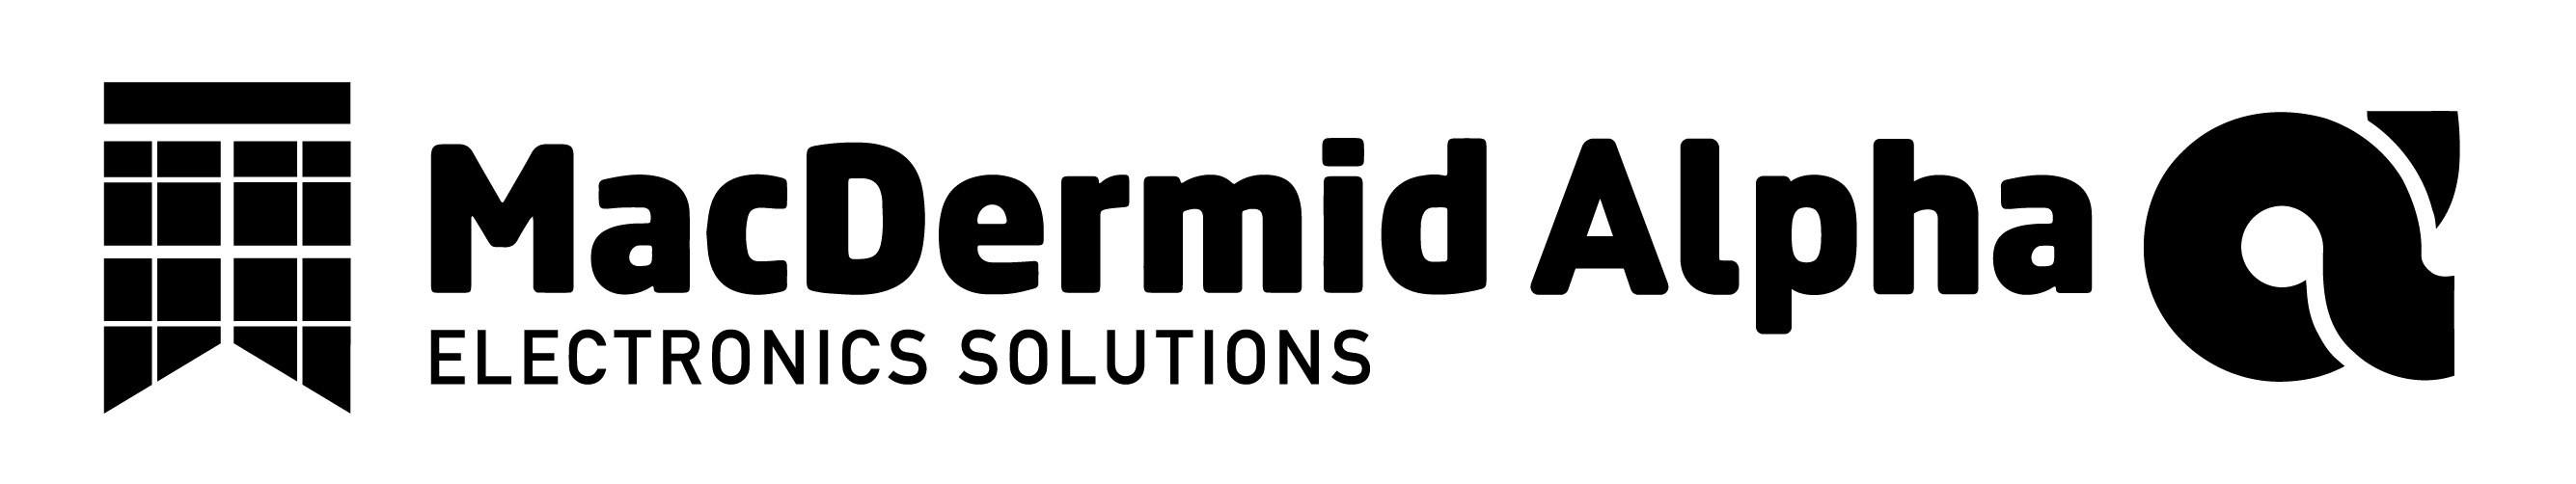 MacDermid Alpha Solutions Announces Kester Acquisition